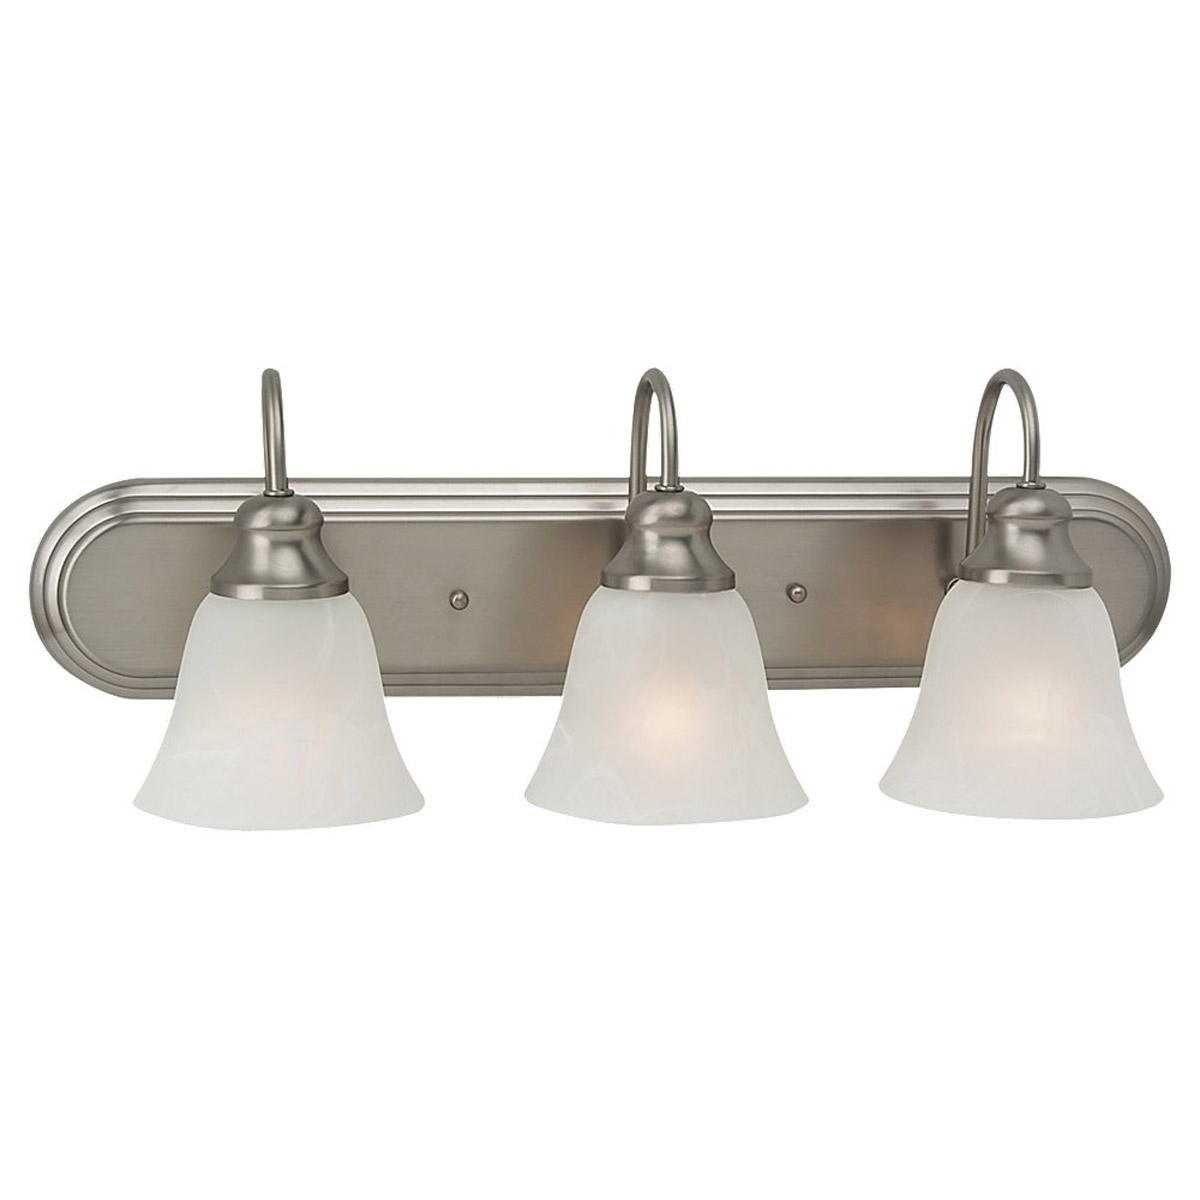 Sea Gull 44941BLE-962 Windgate 3 Light 24 inch Brushed Nickel Bath Vanity Wall Light in Fluorescent photo